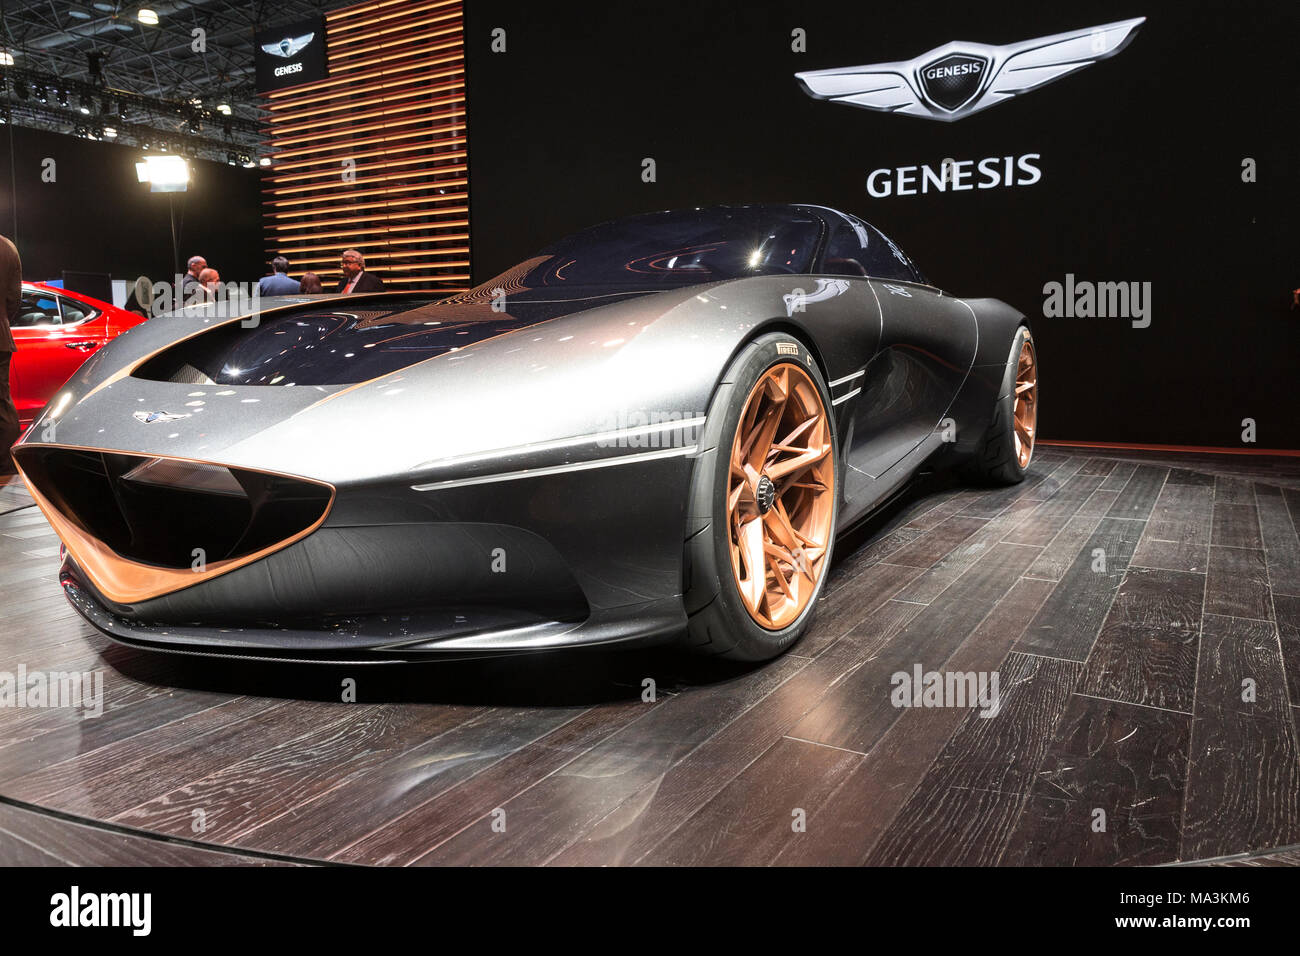 New York NY March Genesis Essentia Concept Car On - Jacob javits center car show 2018